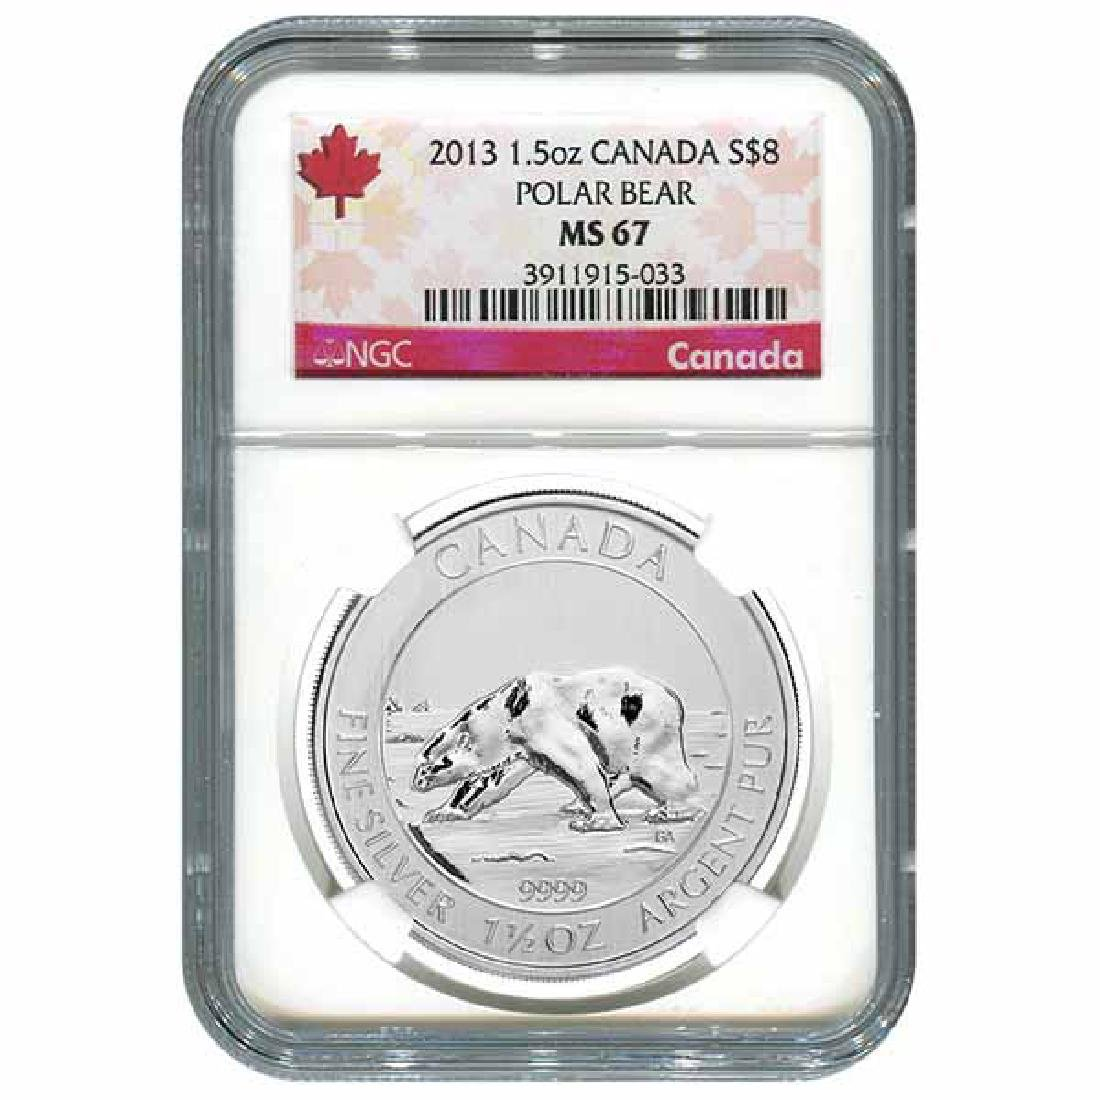 Certified 2013 Canadian Silver Polar Bear 1.5 oz MS67 N